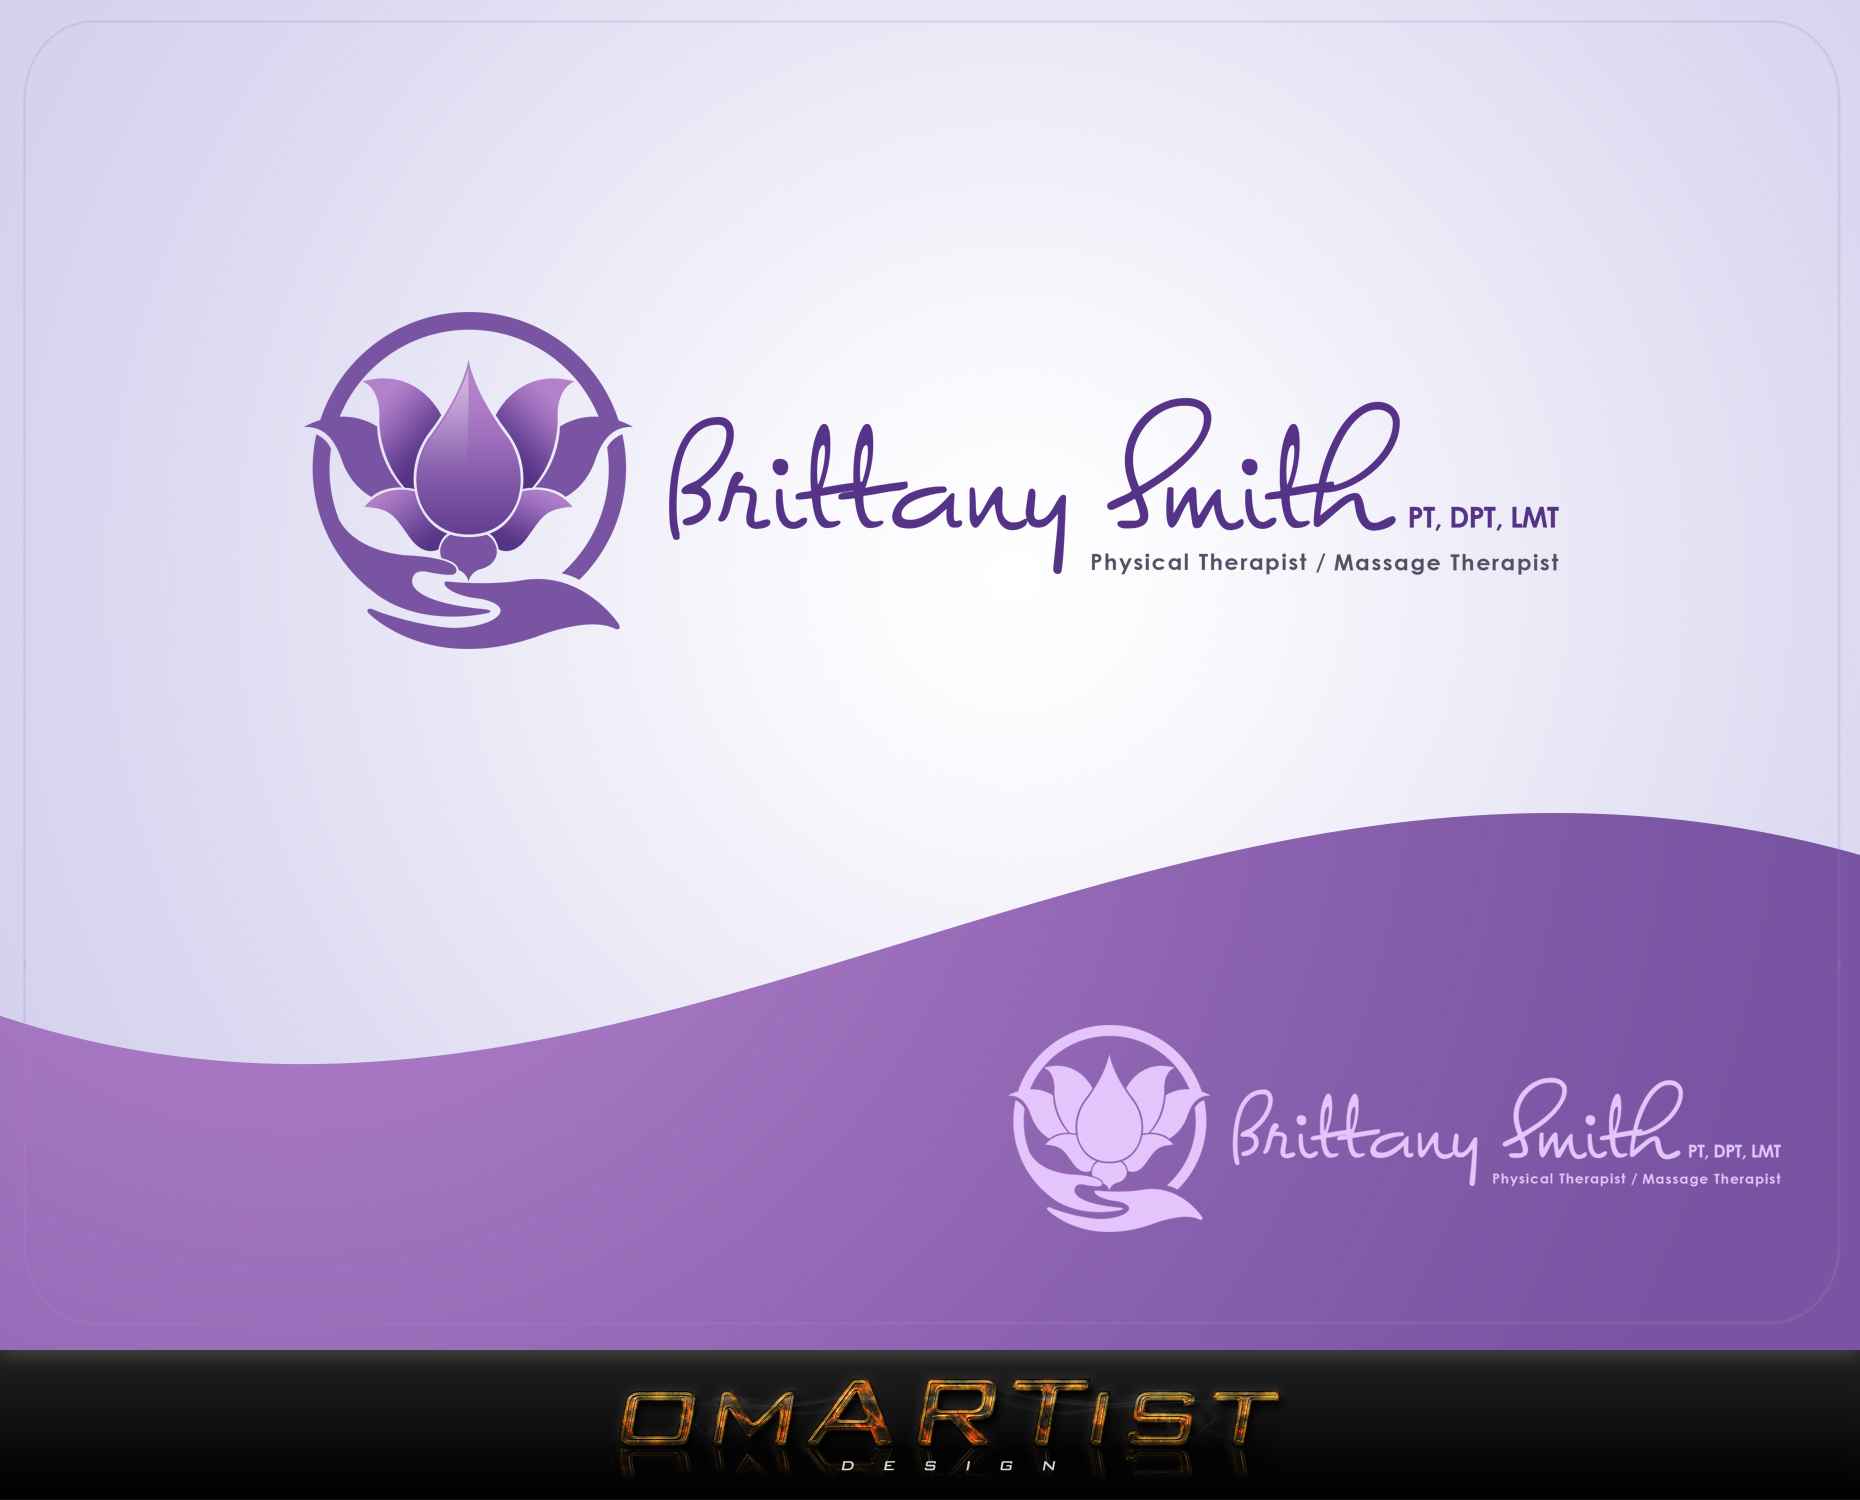 Logo Design by omARTist - Entry No. 63 in the Logo Design Contest Artistic Logo Design for my personal massage therapy business.